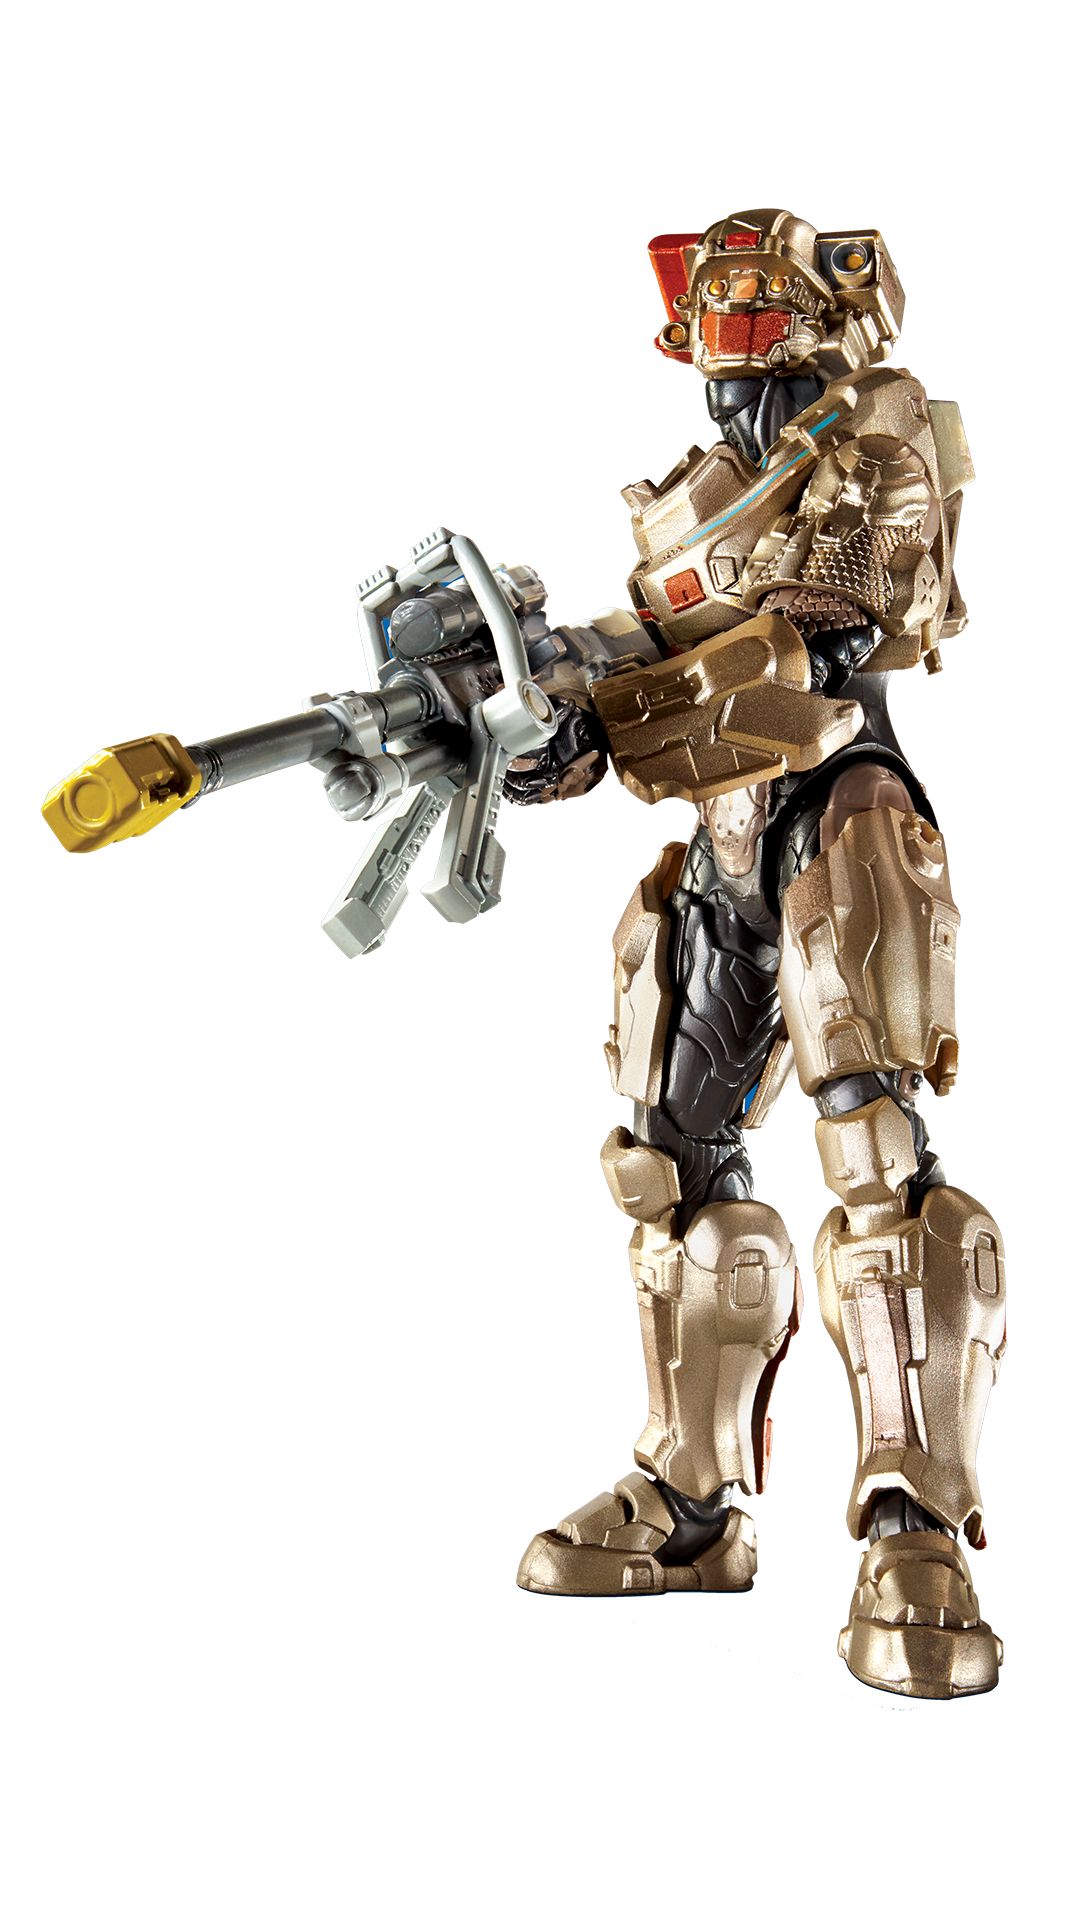 Halo 5 linda png. Industries and mattel